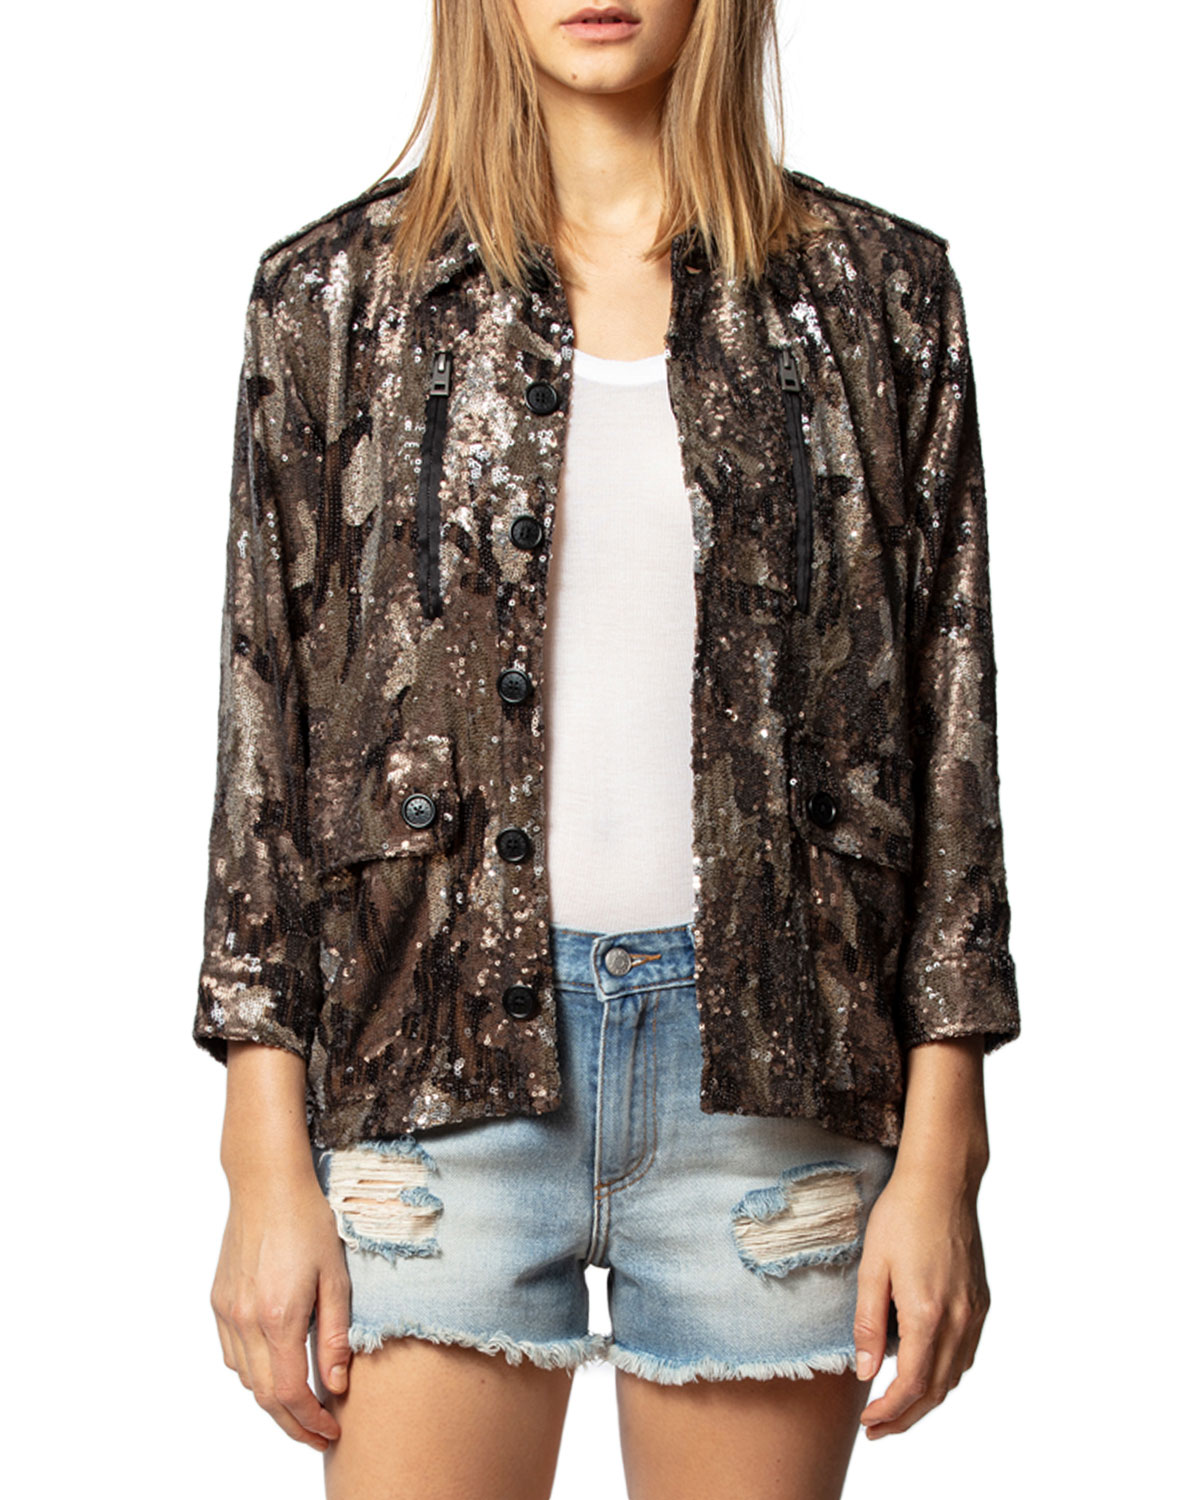 Zadig & Voltaire Downs KID SEQUINED CAMO-PRINT JACKET